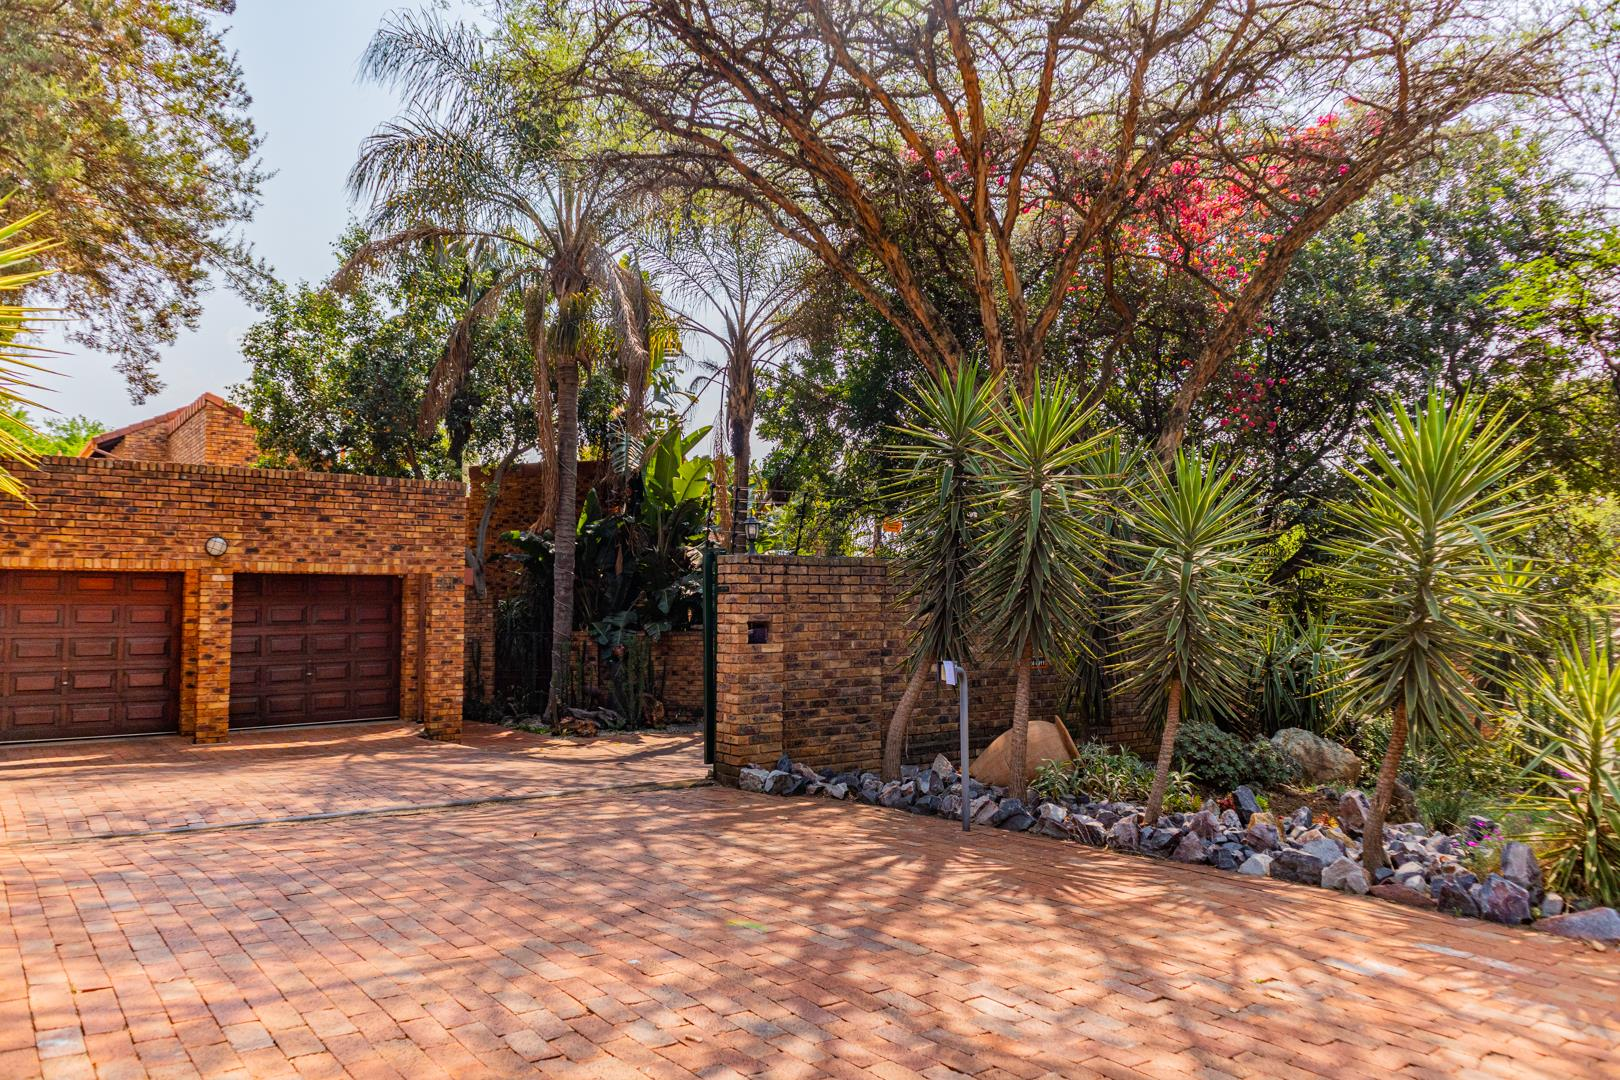 4 Bedroom House For Sale in Robin Hills